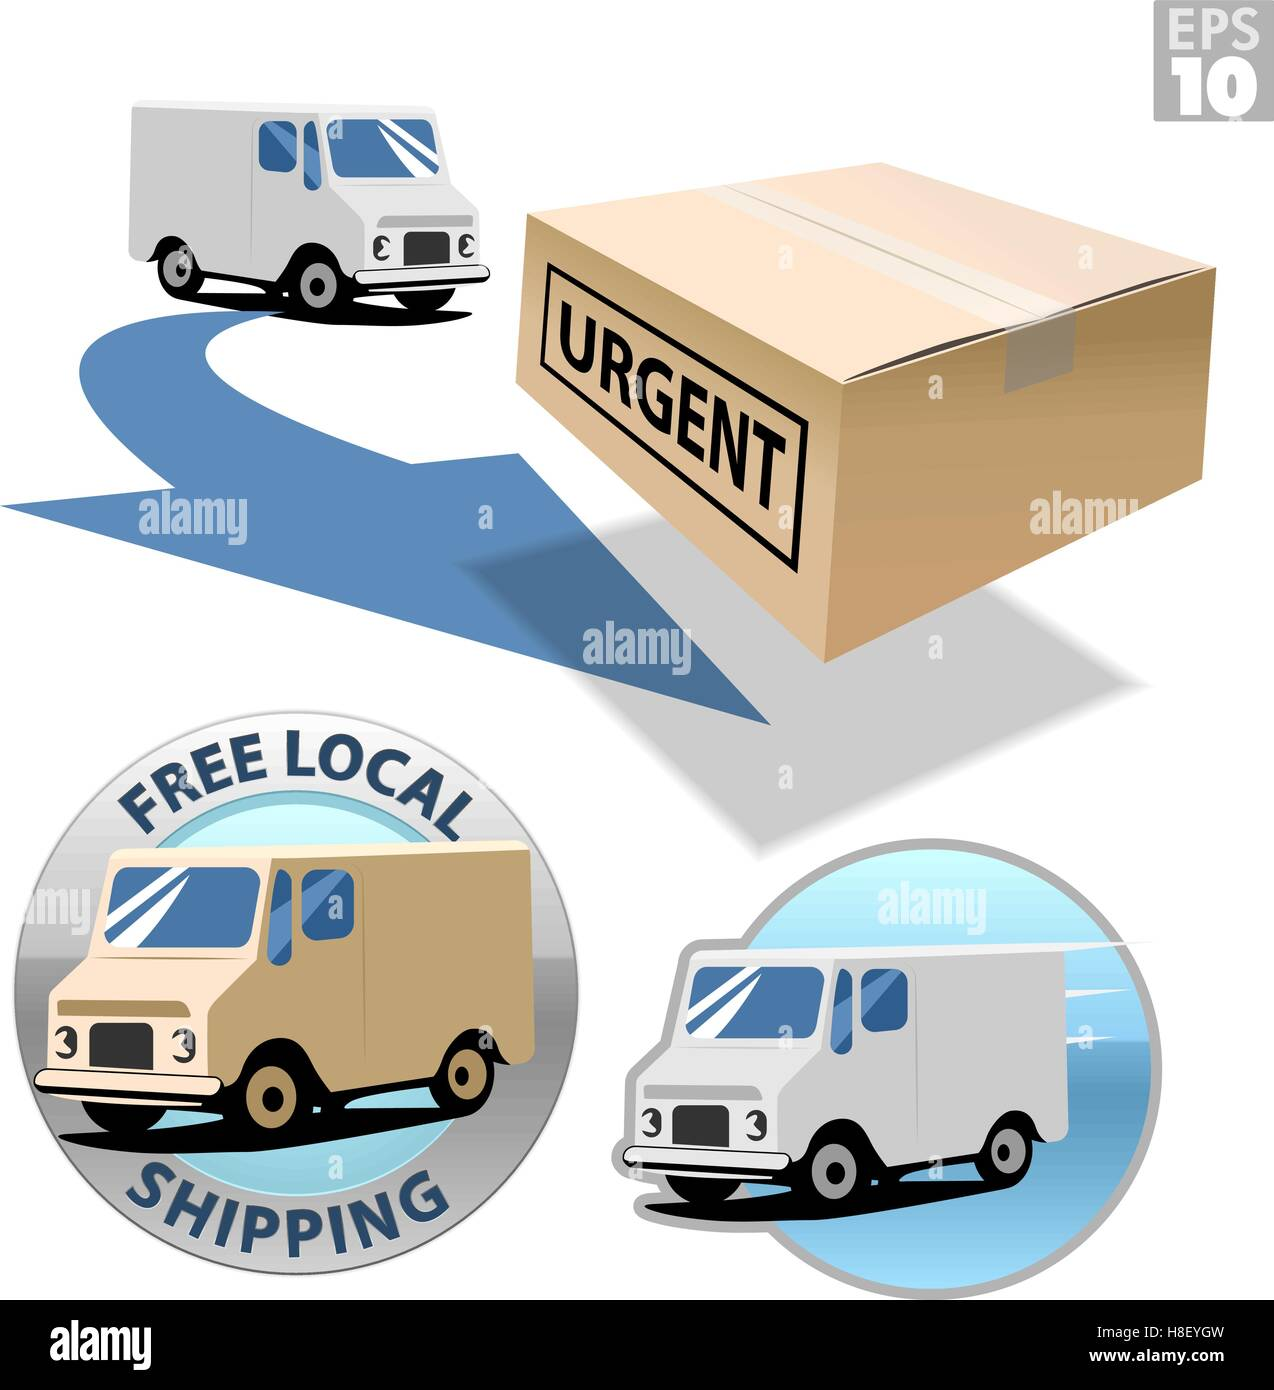 Delivery truck with urgent box, free local shipping, fast delivery - Stock Image